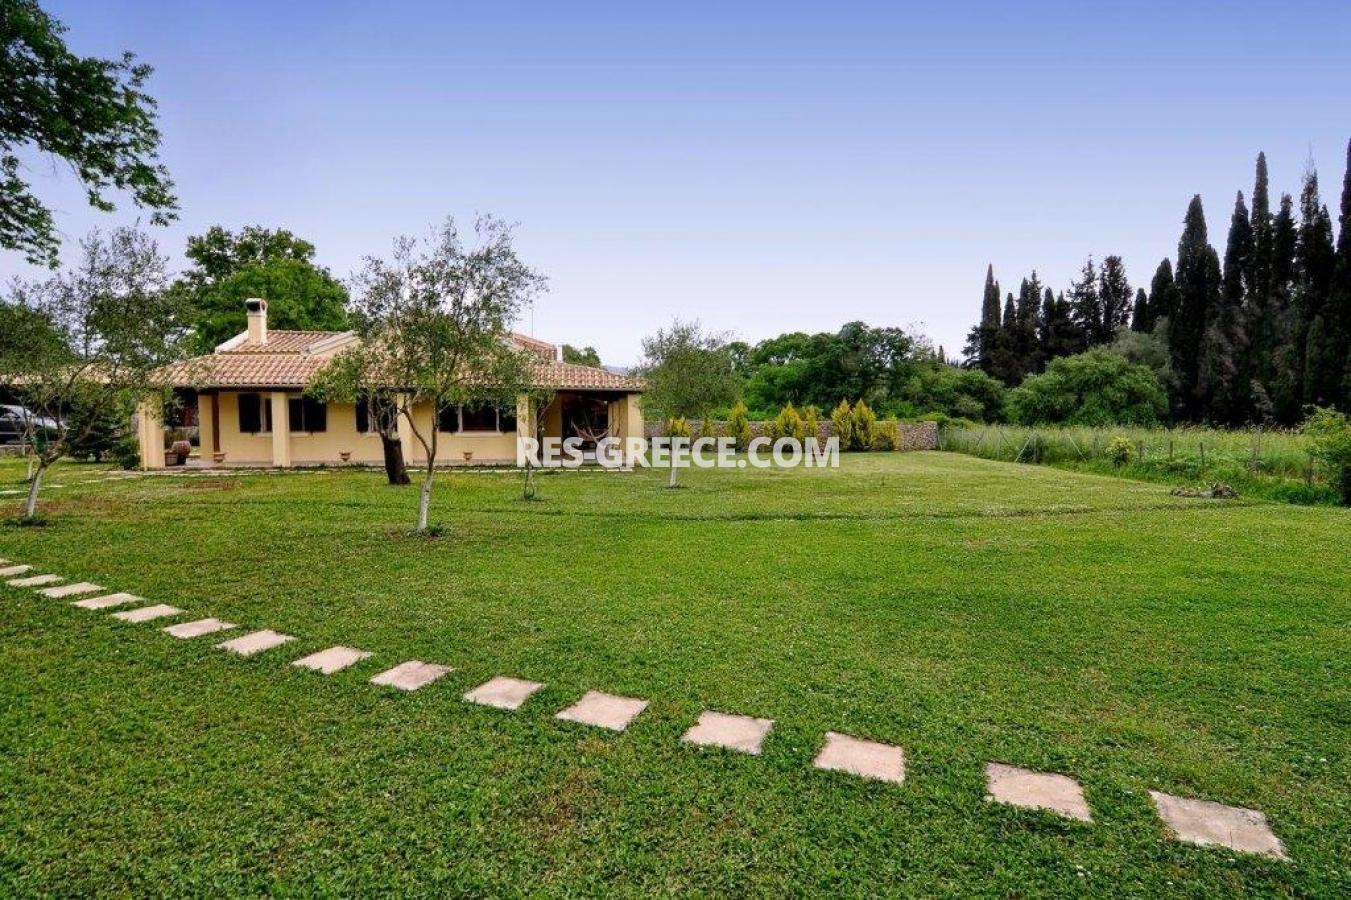 Poulades, Ionian Islands, Greece - Mediterranean bungalow for sale in Corfu - Photo 1